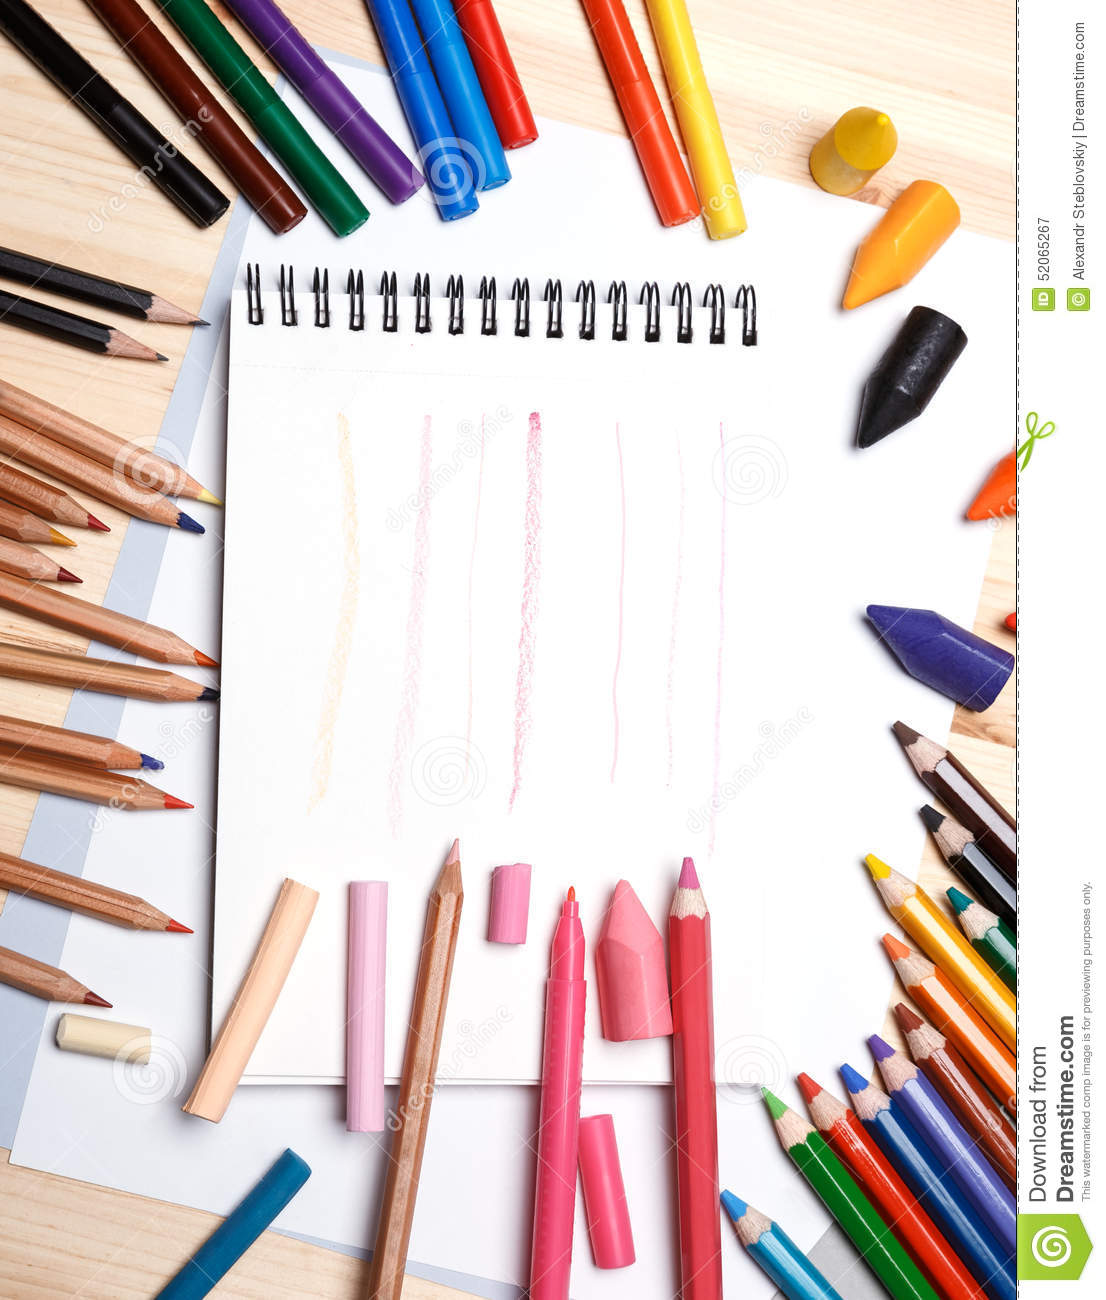 Business Office Paint Colors Drawing Materials Stock Photo Image 52065267